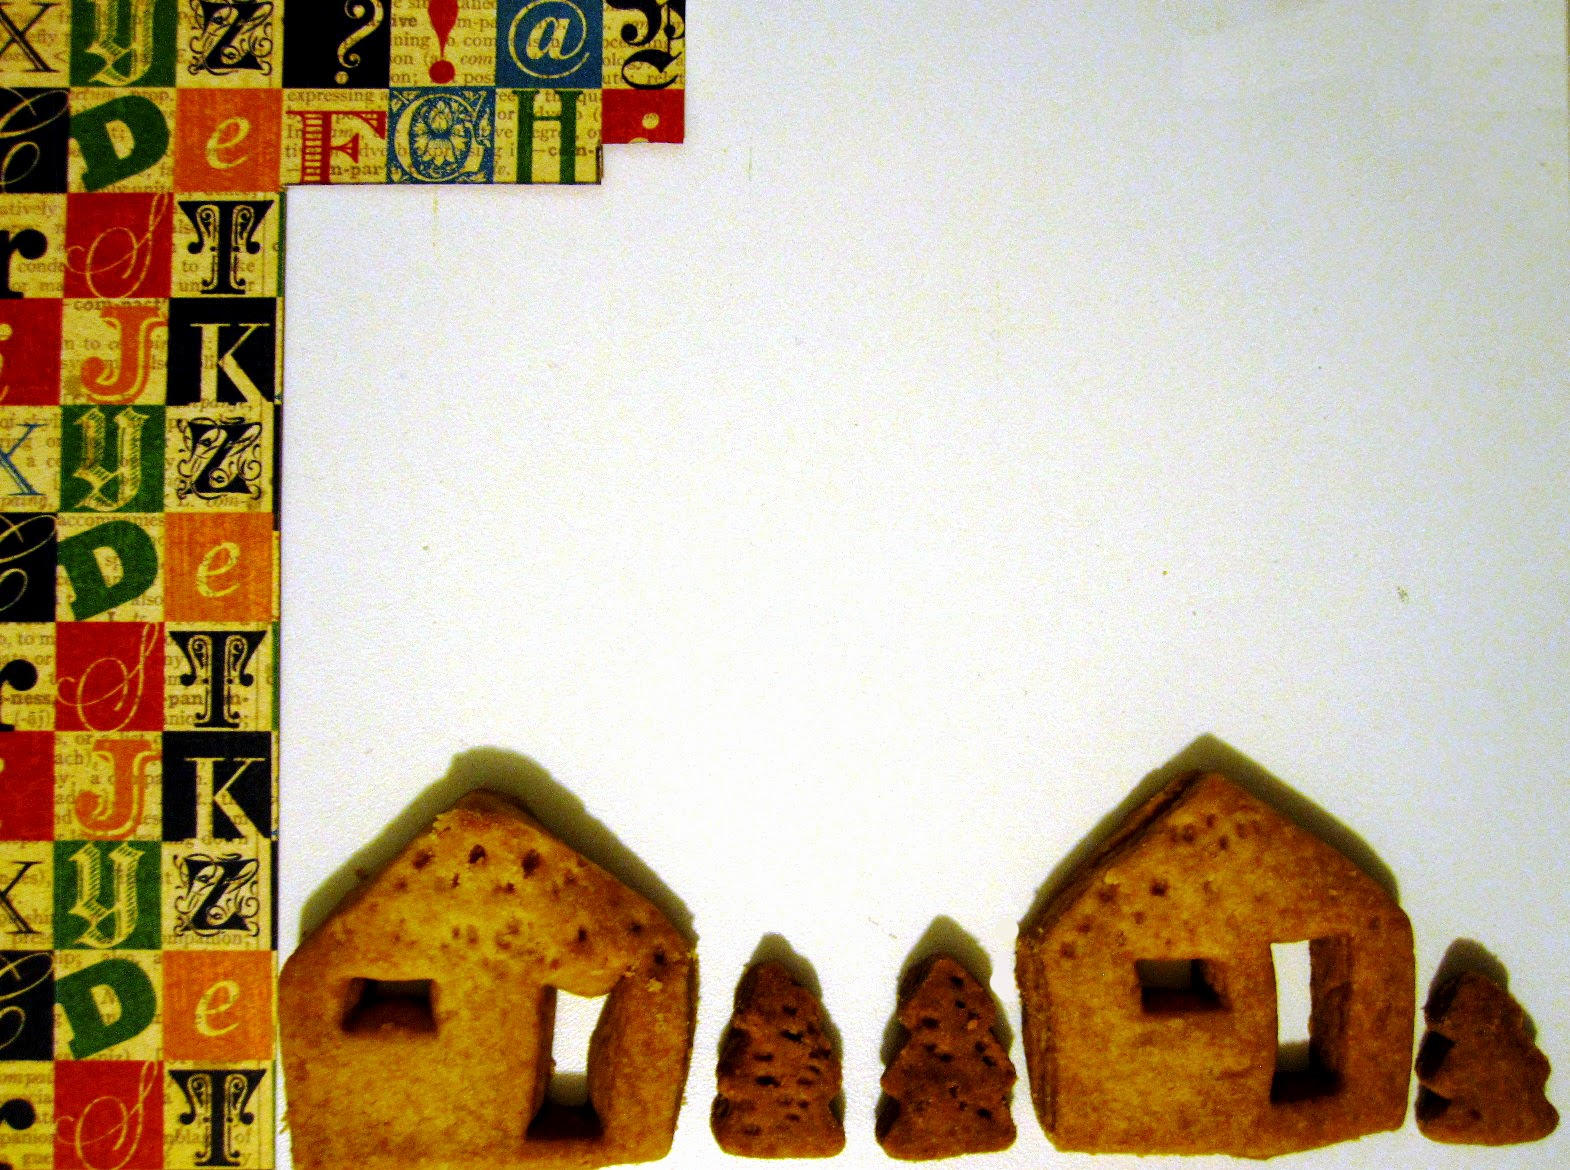 Part of a piece of scrapbooking paper with a typographic design next two several shortbread biscuits in the shape of houses and trees.